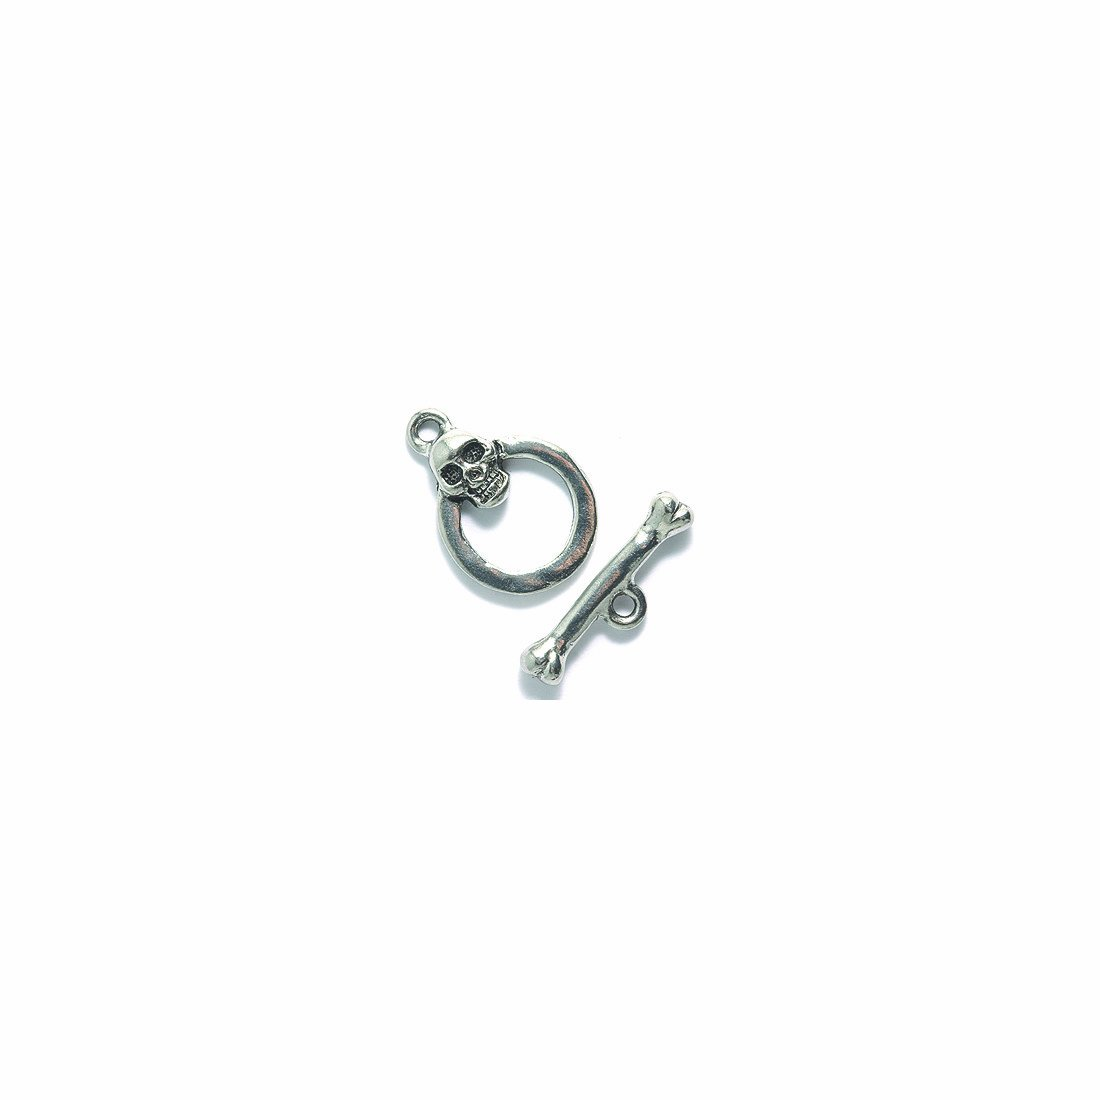 Shipwreck Beads Pewter Skull and Bones Toggle Clasp, Metallic, Silver, 14 by 20mm, Set of 3 PW5836-S